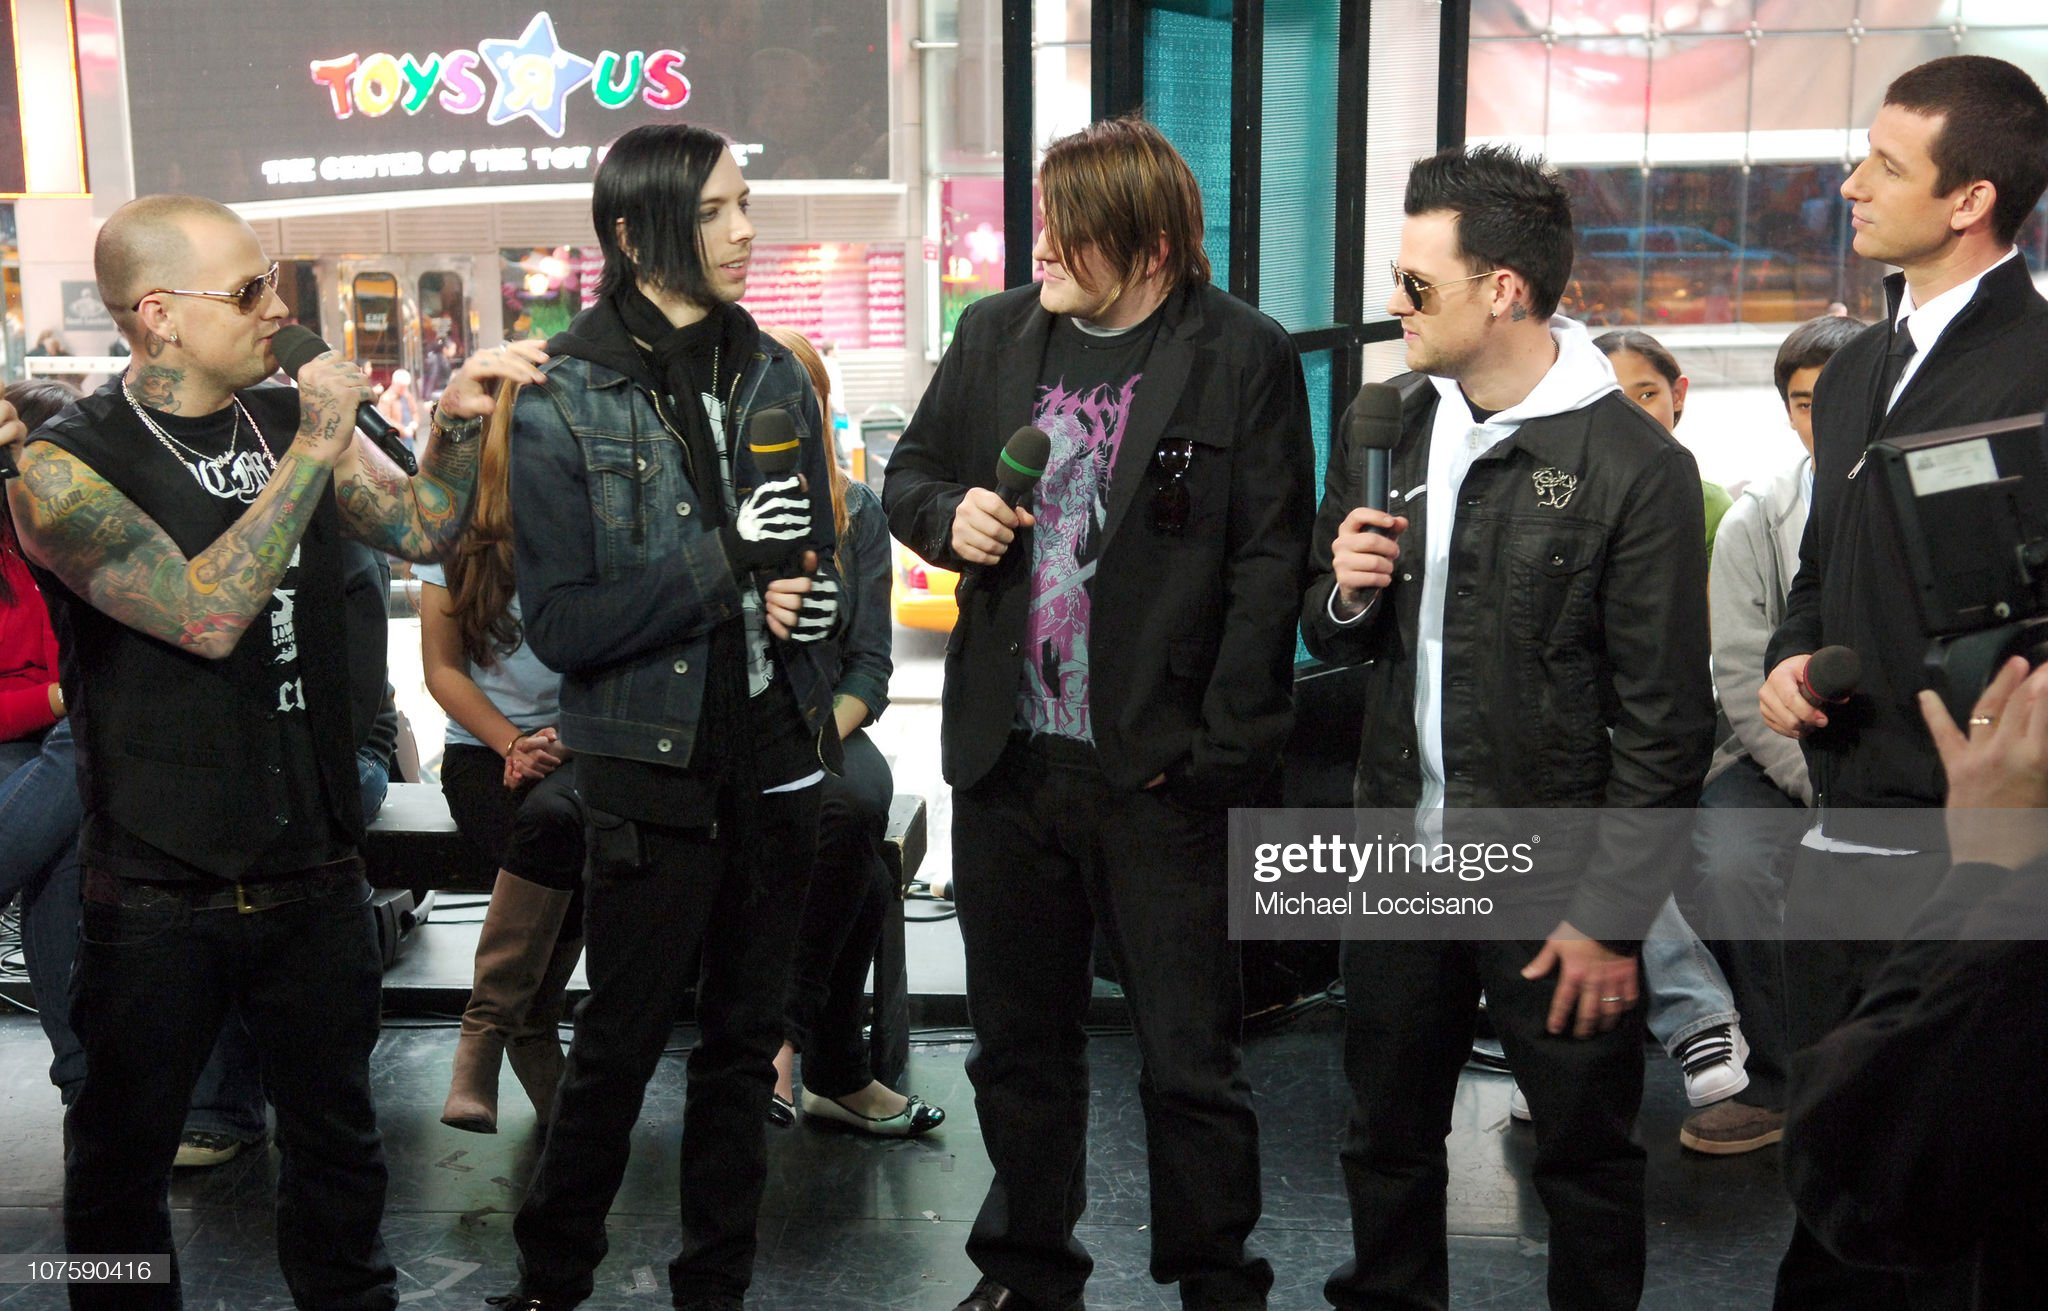 ¿Cuánto mide Benji Madden? - Altura - Real height Benji-madden-billy-martin-paul-thomas-joel-madden-and-dean-picture-id107590416?s=2048x2048